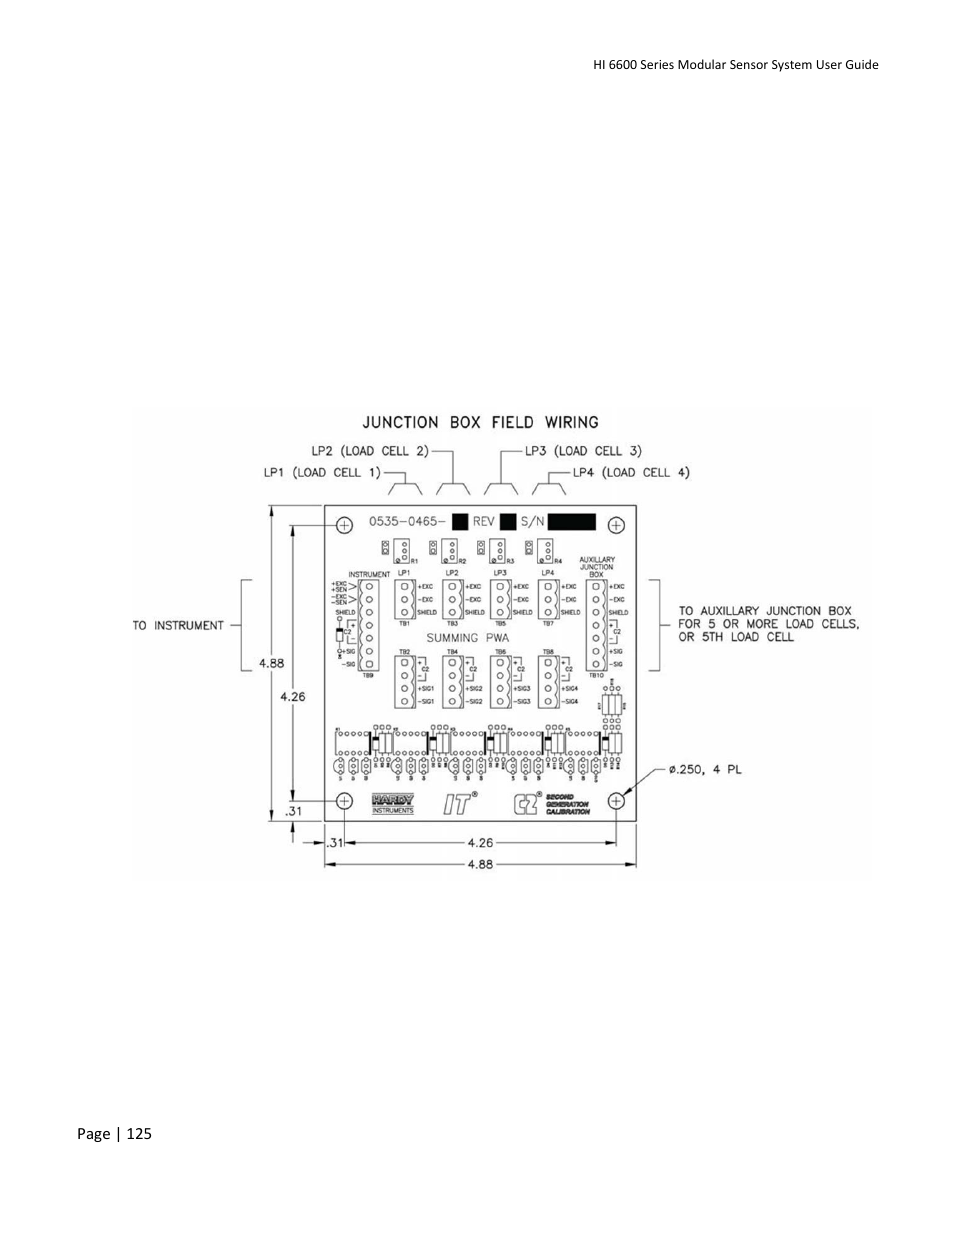 hight resolution of appendix e wiring junction boxes or summing cards hardy hi 6600 series modular sensor system user manual page 125 127